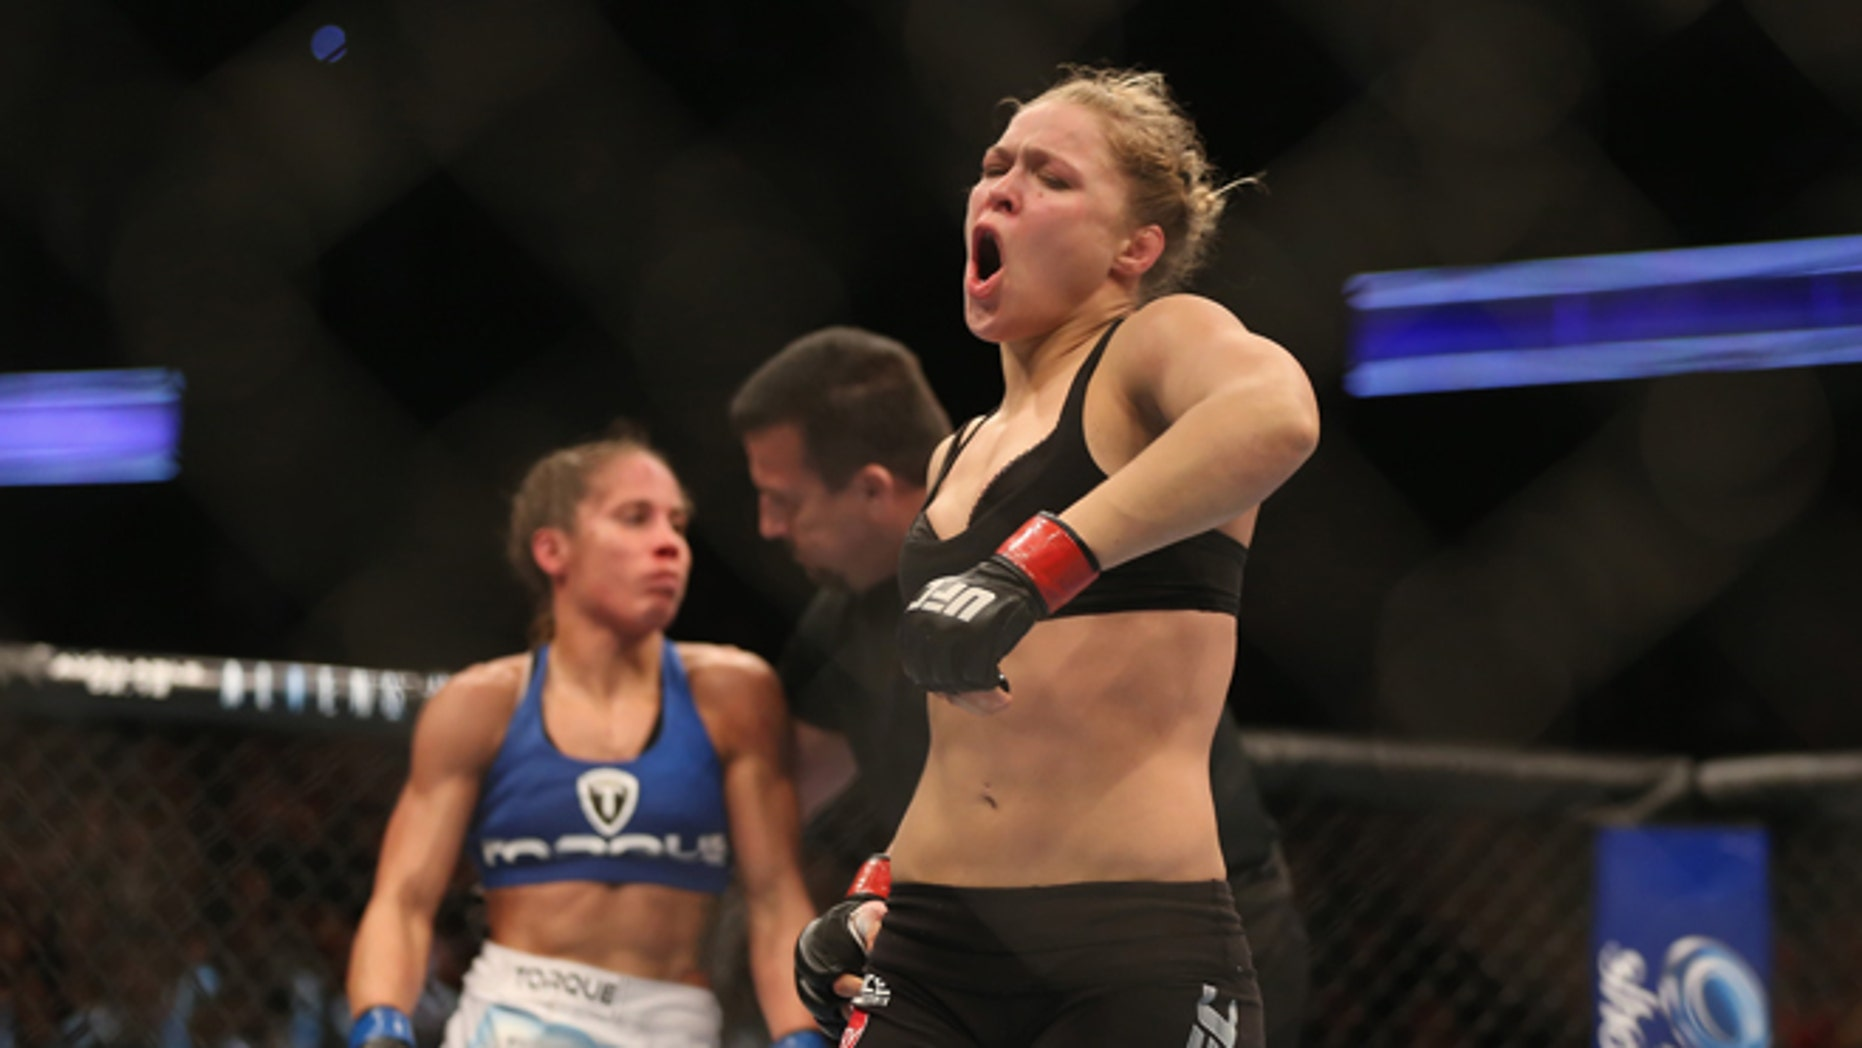 ANAHEIM, CA - FEBRUARY 23:  Ronda Rousey celebrates her UFC Bantamweight Title over Liz Carmouche at Honda Center on February 23, 2013 in Anaheim, California.  (Photo by Jeff Gross/Getty Images)